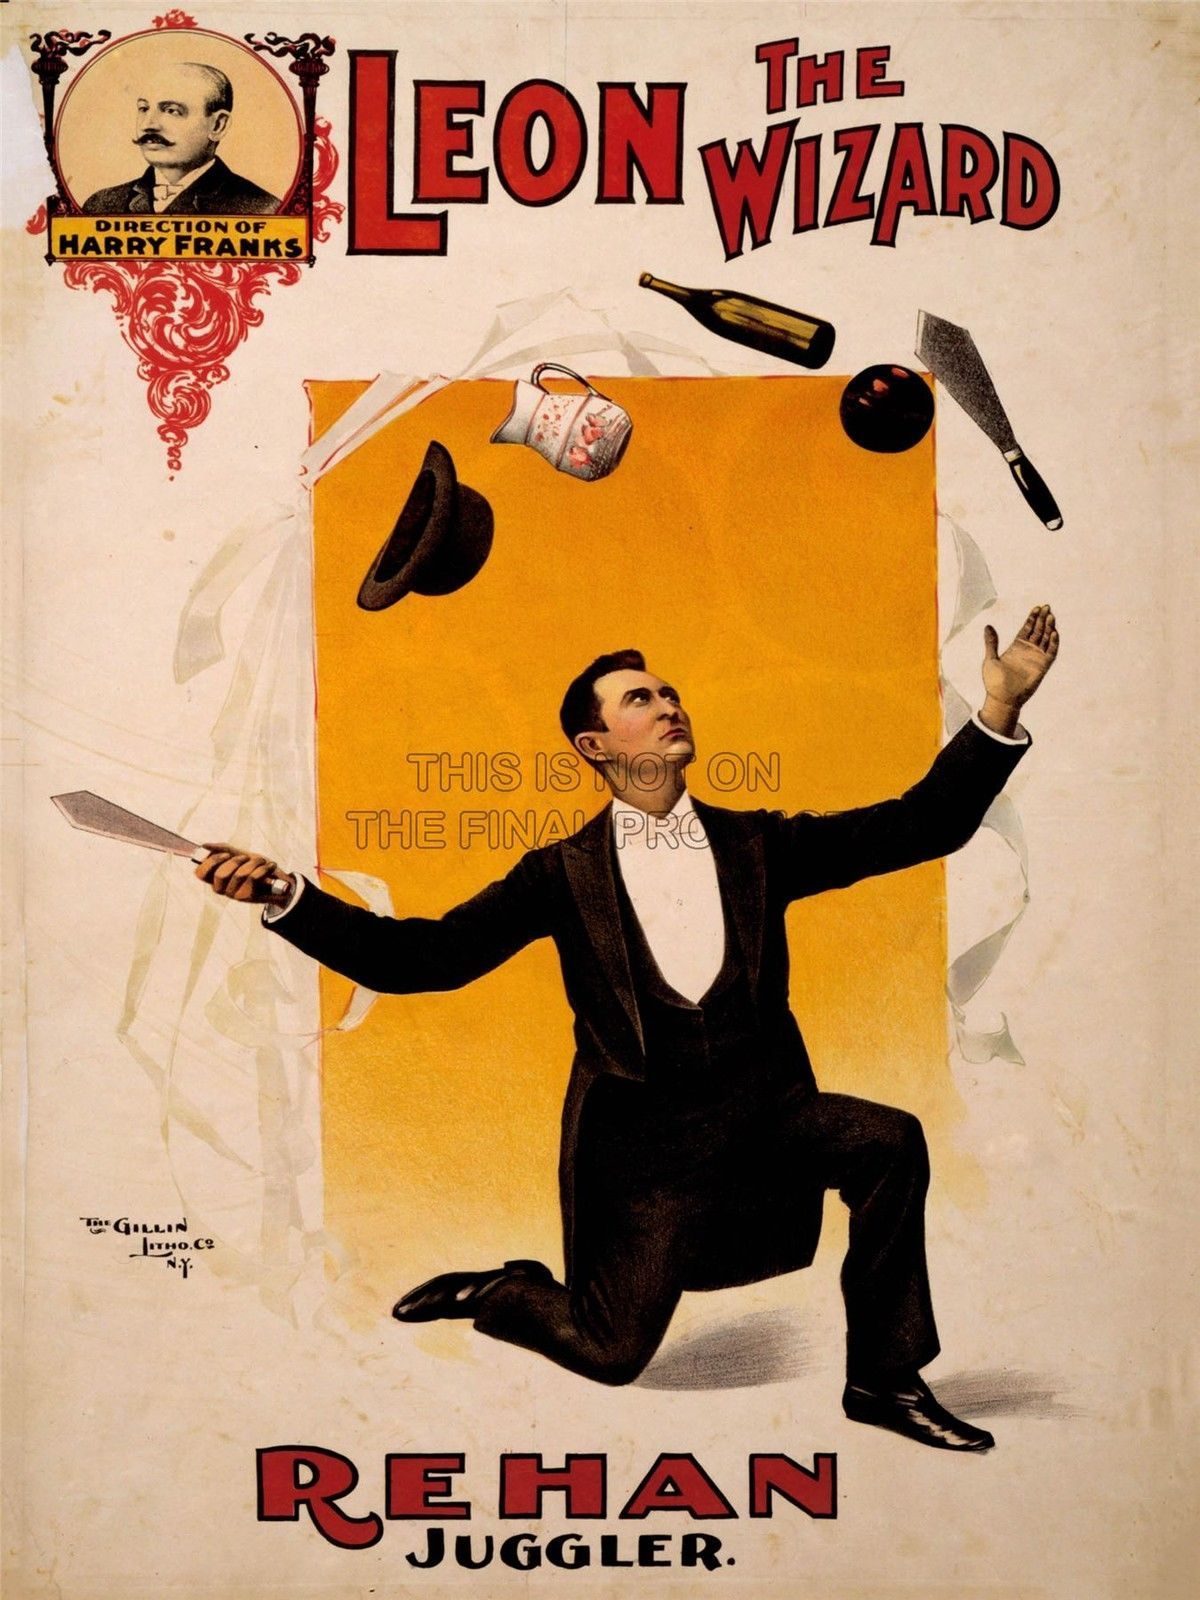 Advertising Circus Vaudeville Leon Wizard Rehan Juggler Act Poster Print